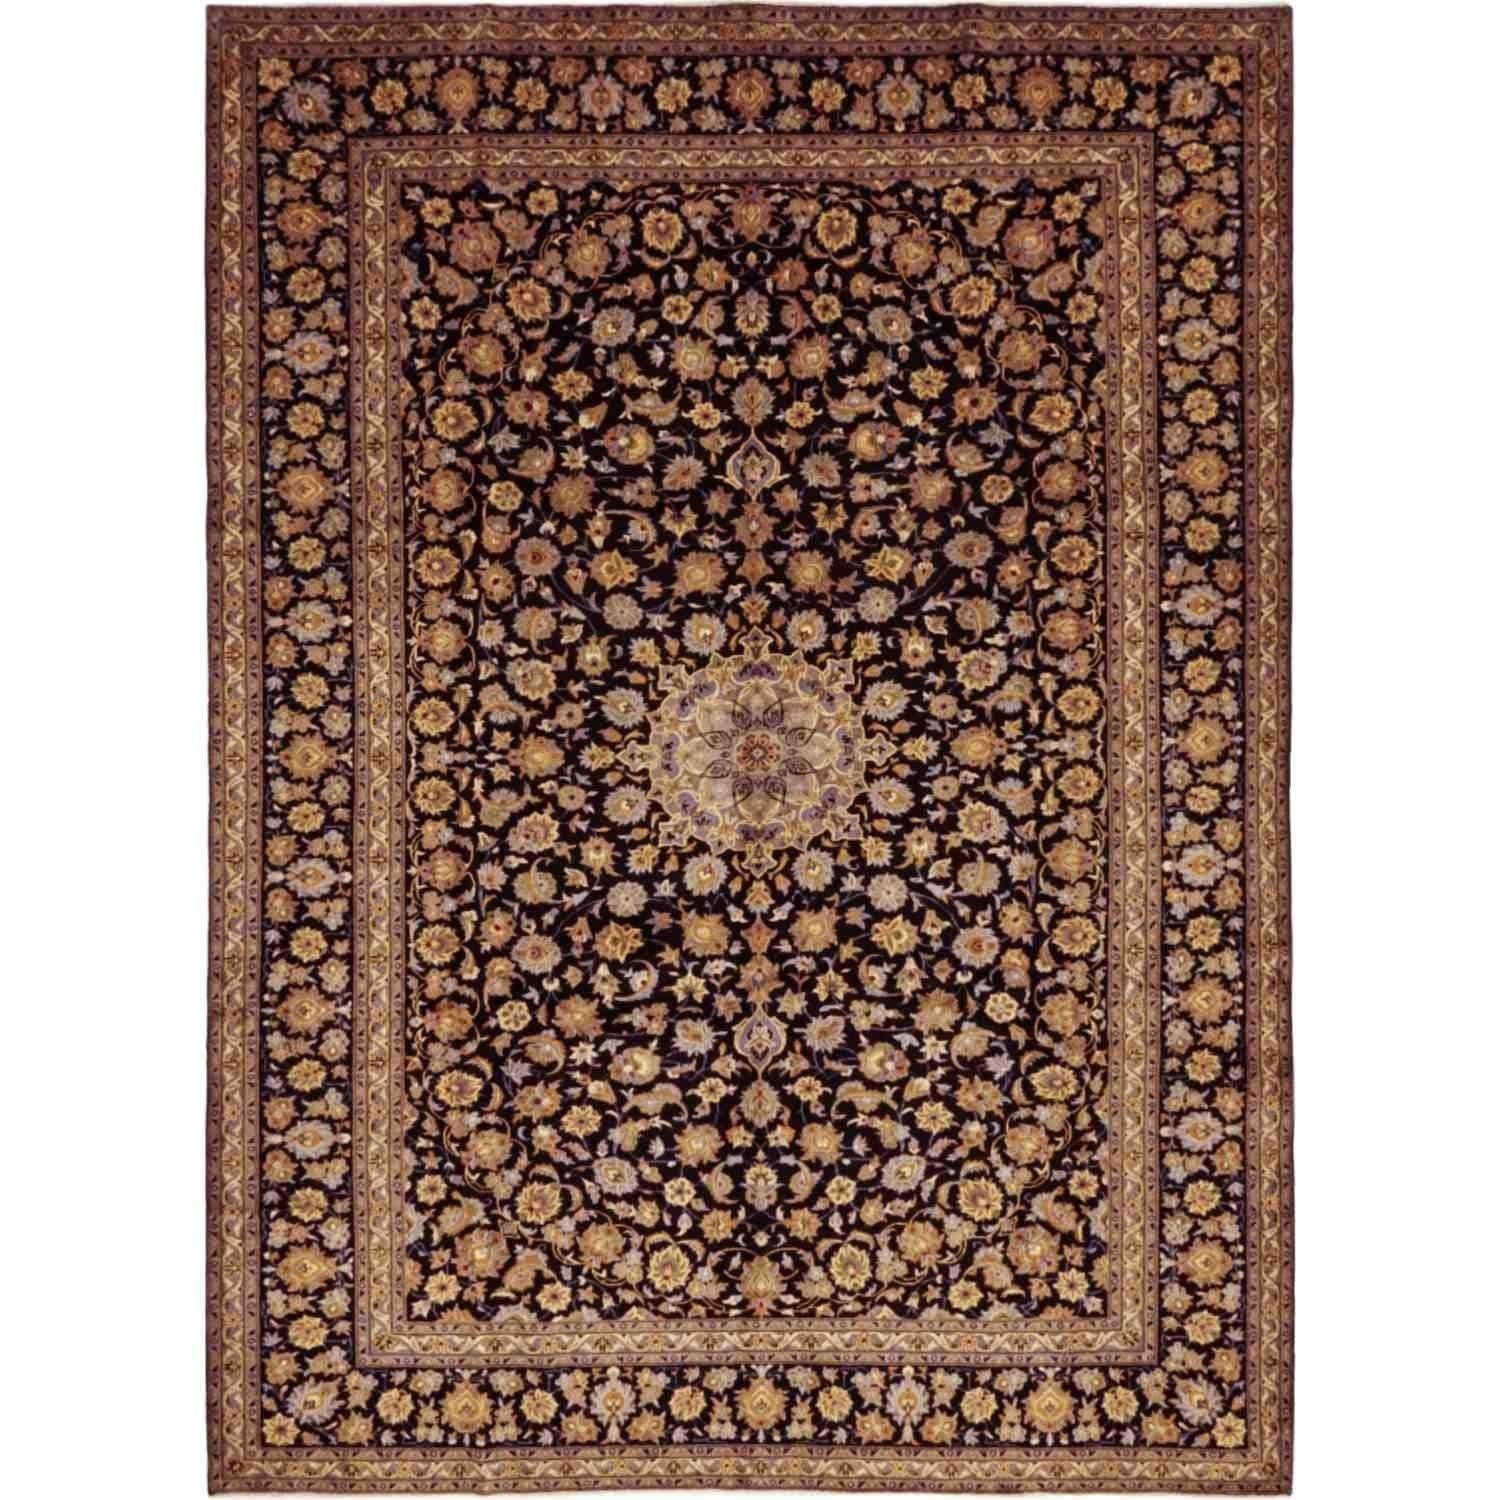 Kashan Hand Knotted Area Rug 10 0 X 14 0 10 0 X 14 0 Blue Wool Oriental Colorful Rugs Area Rugs Natural Rug